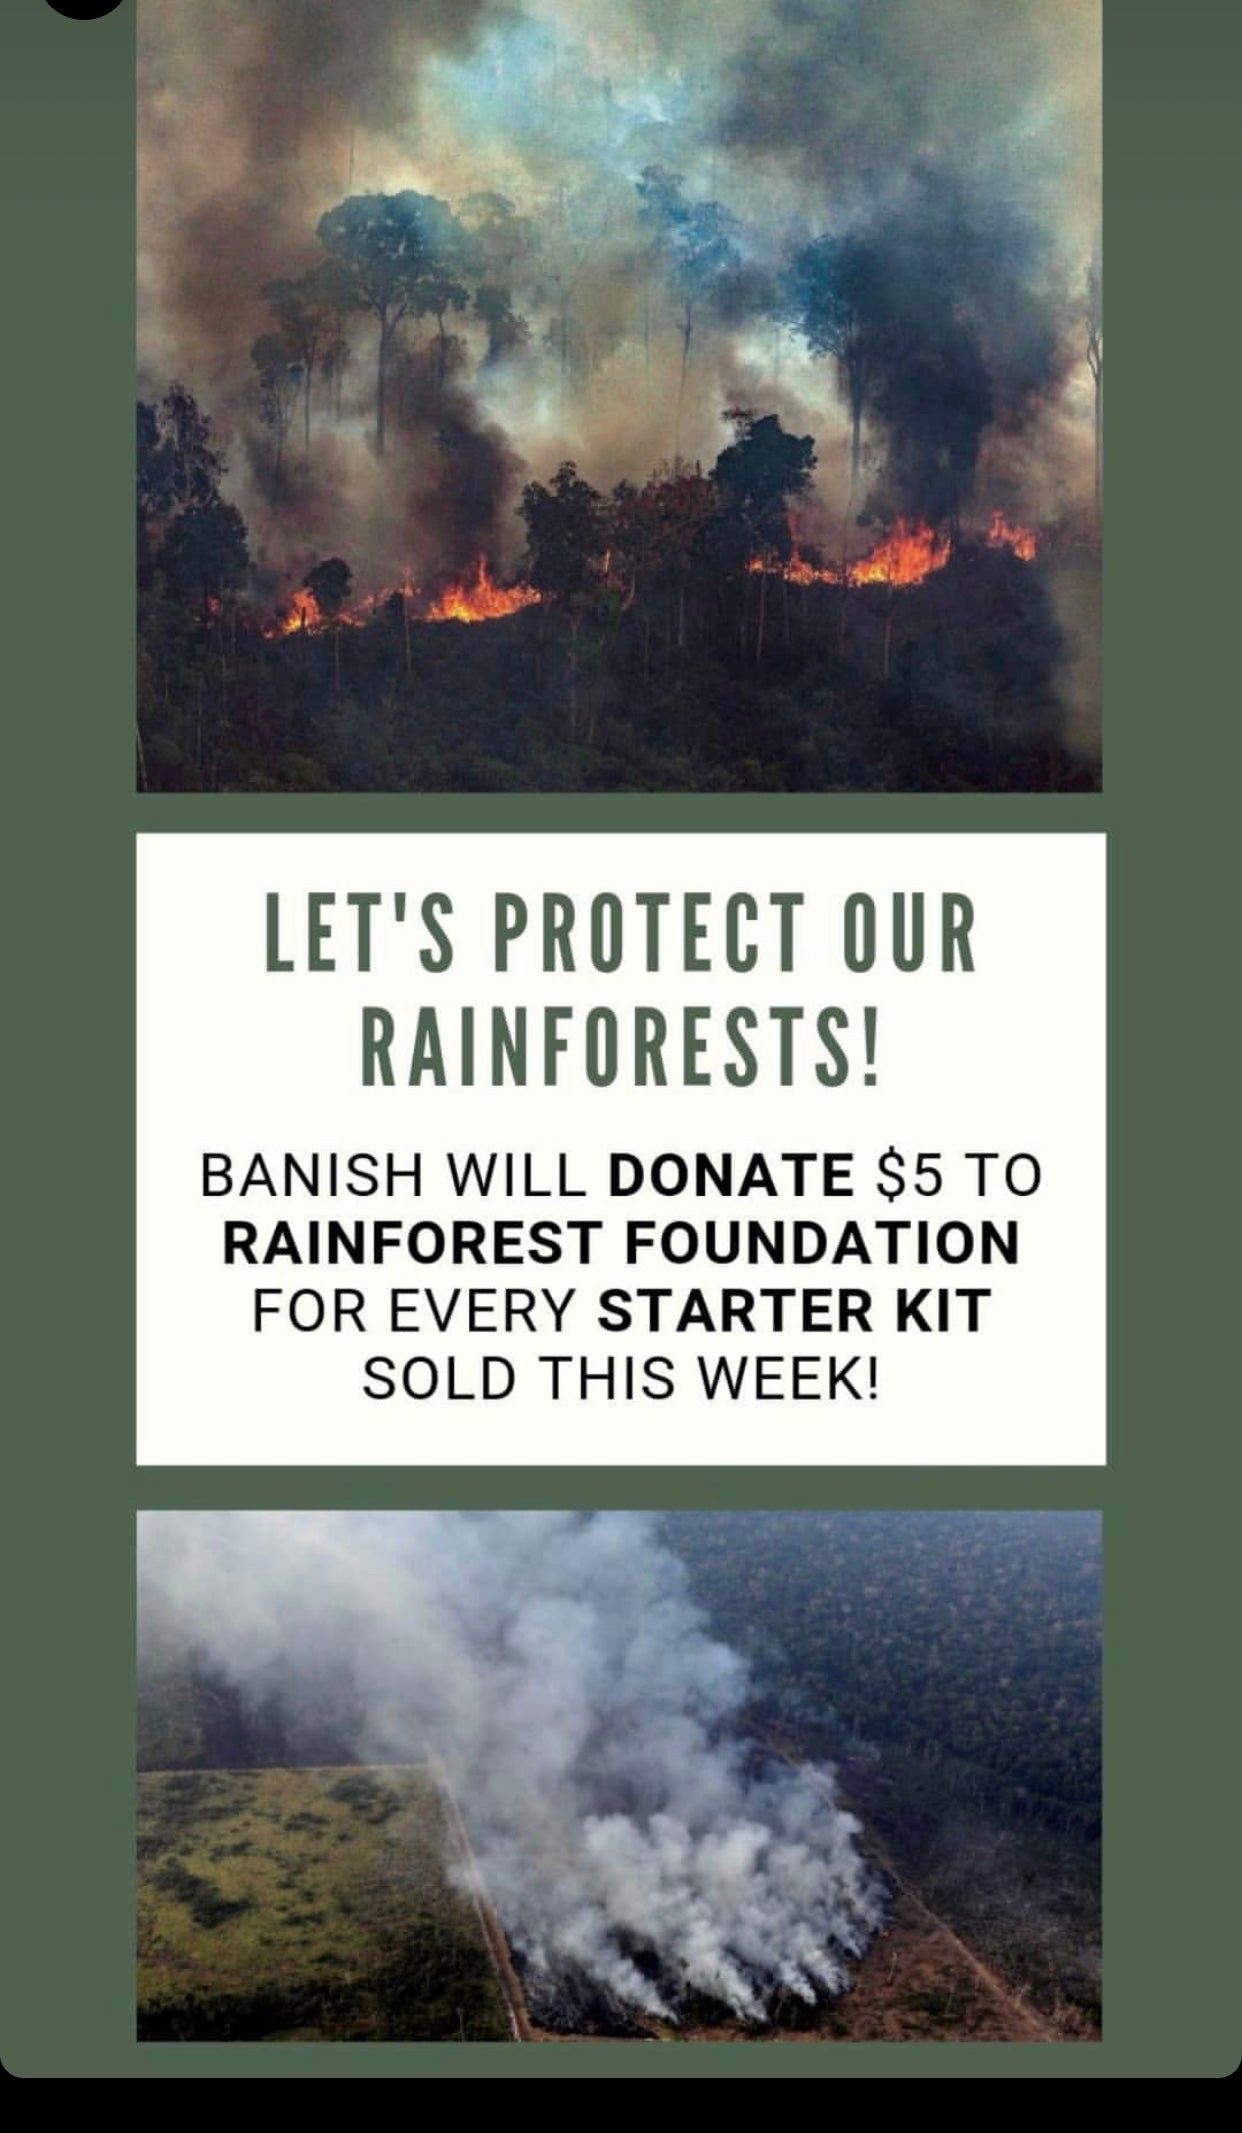 Banish is donating $5 for every starter kit sold to the Rainforest Foundation!